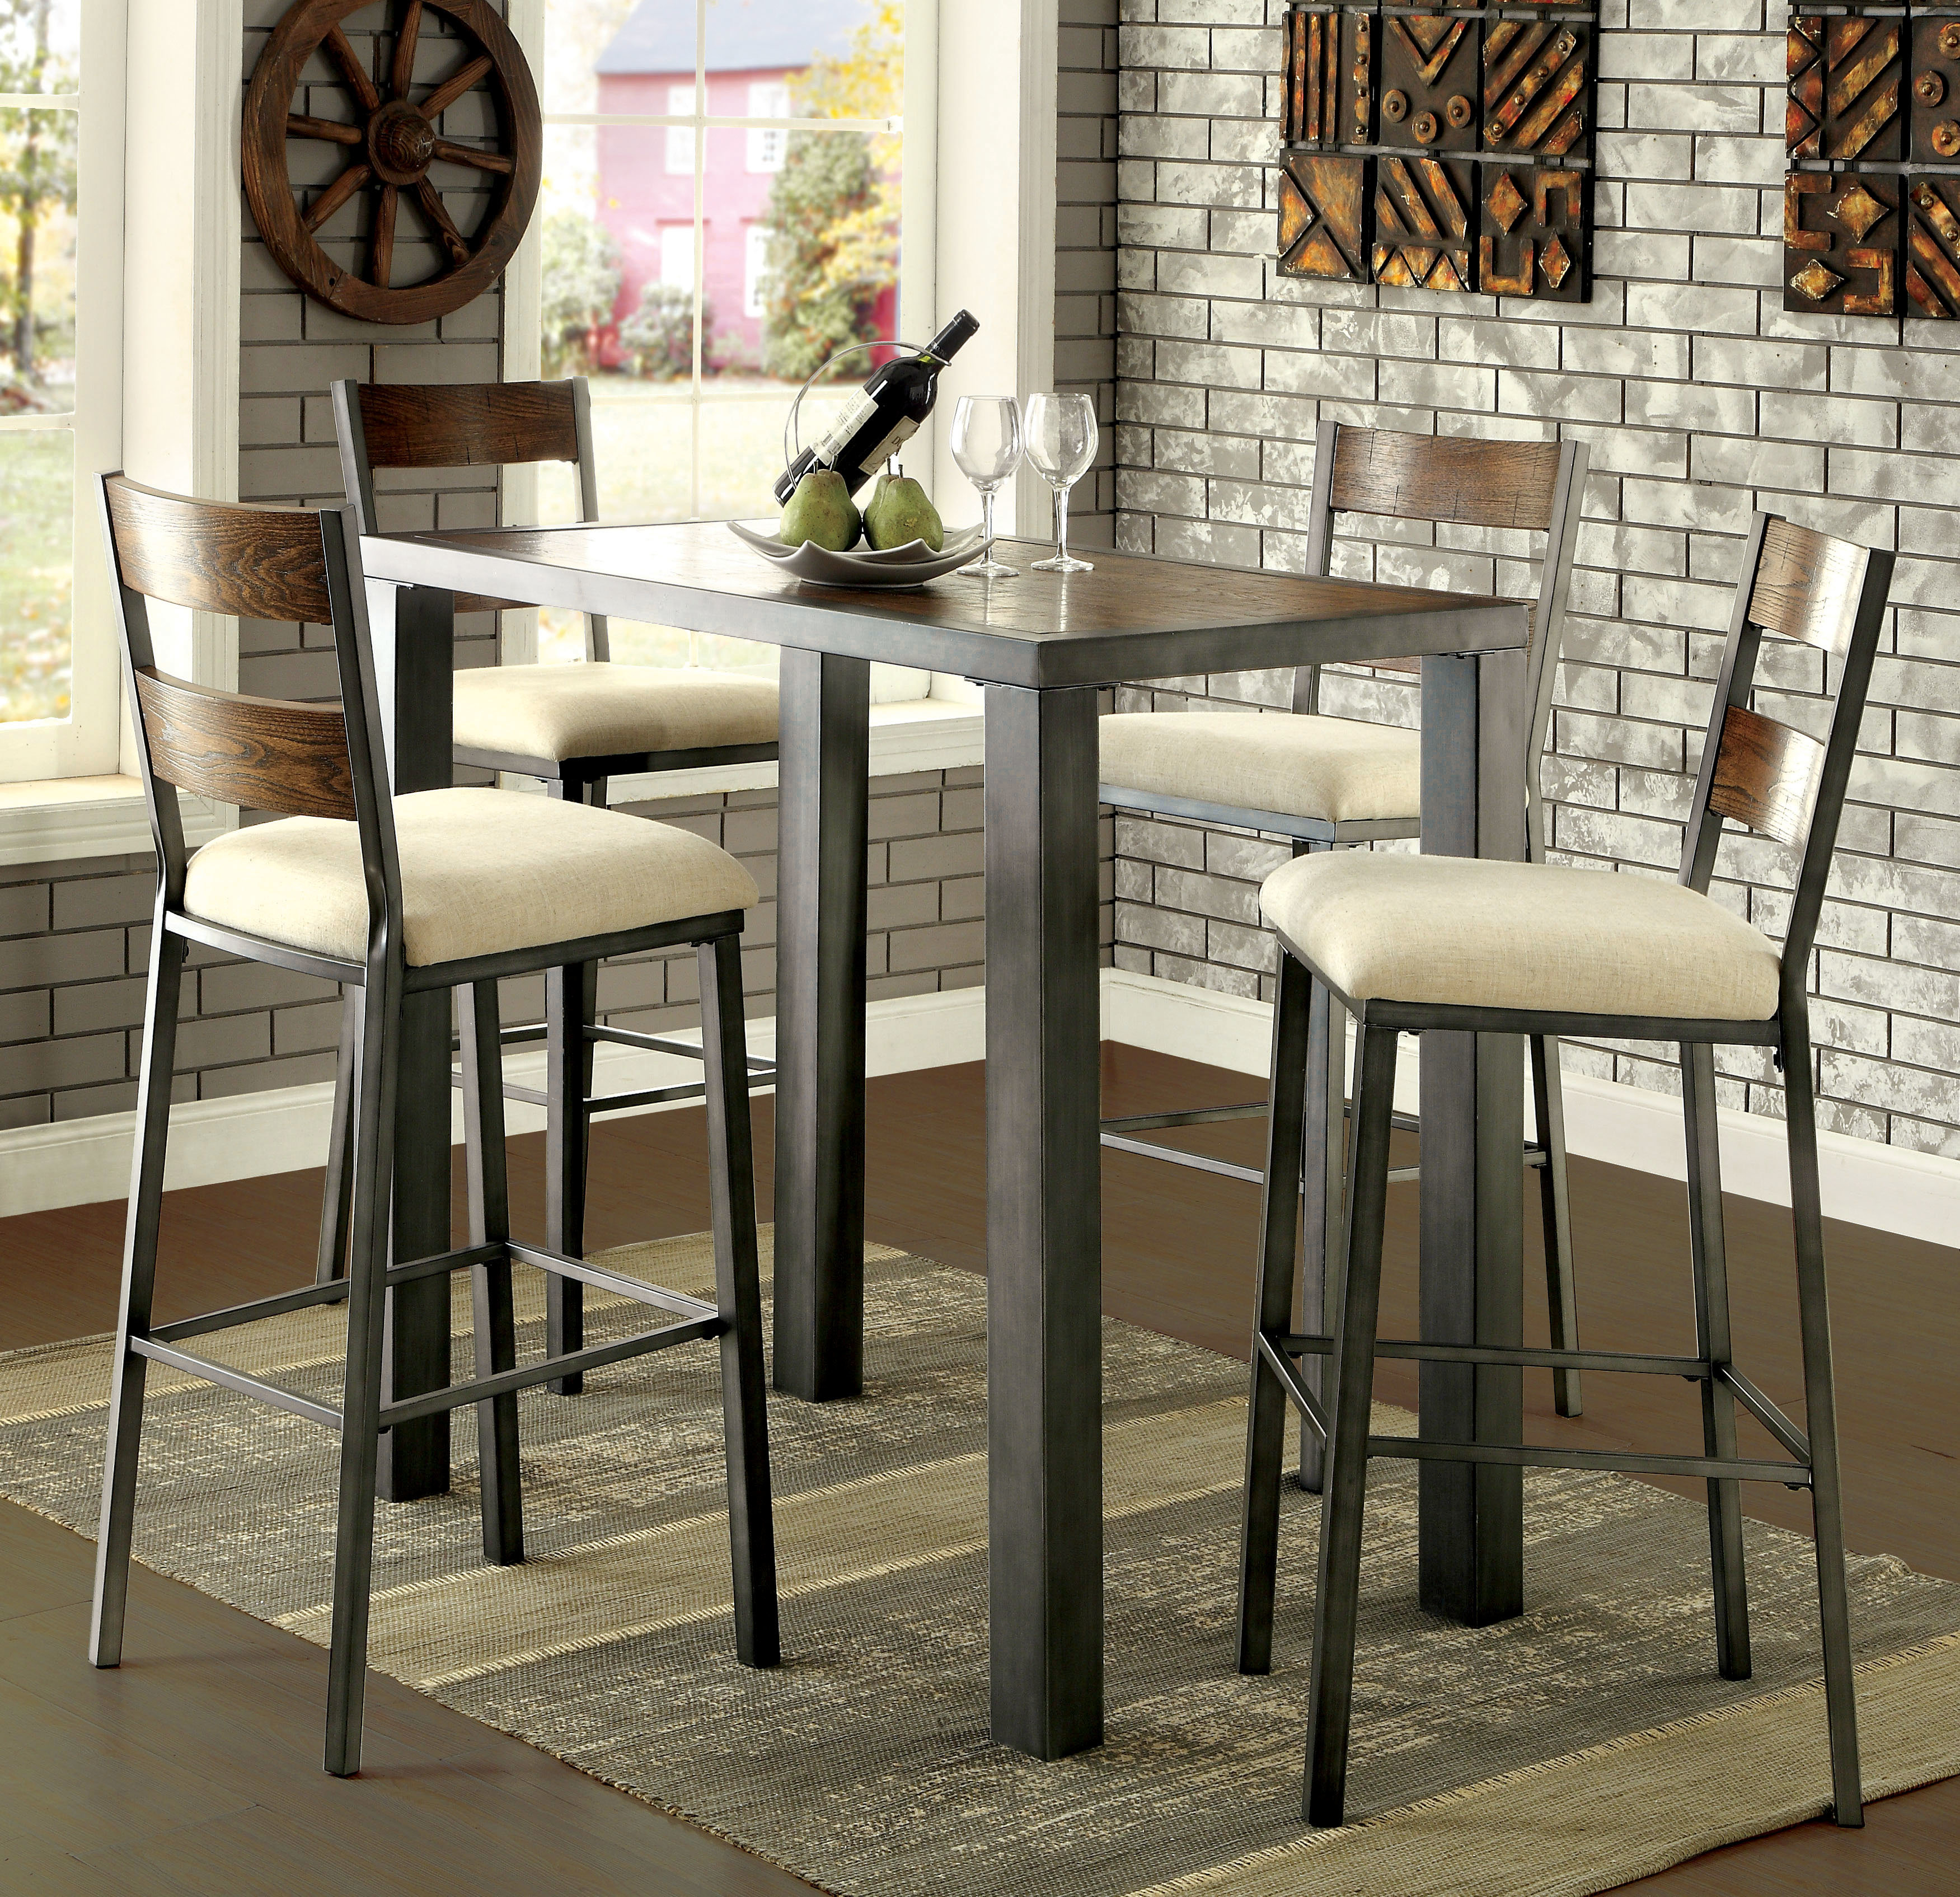 Biggs 5 Piece Counter Height Solid Wood Dining Sets (Set Of 5) For Most Recently Released Thurman 5 Piece Pub Table Set (#2 of 20)